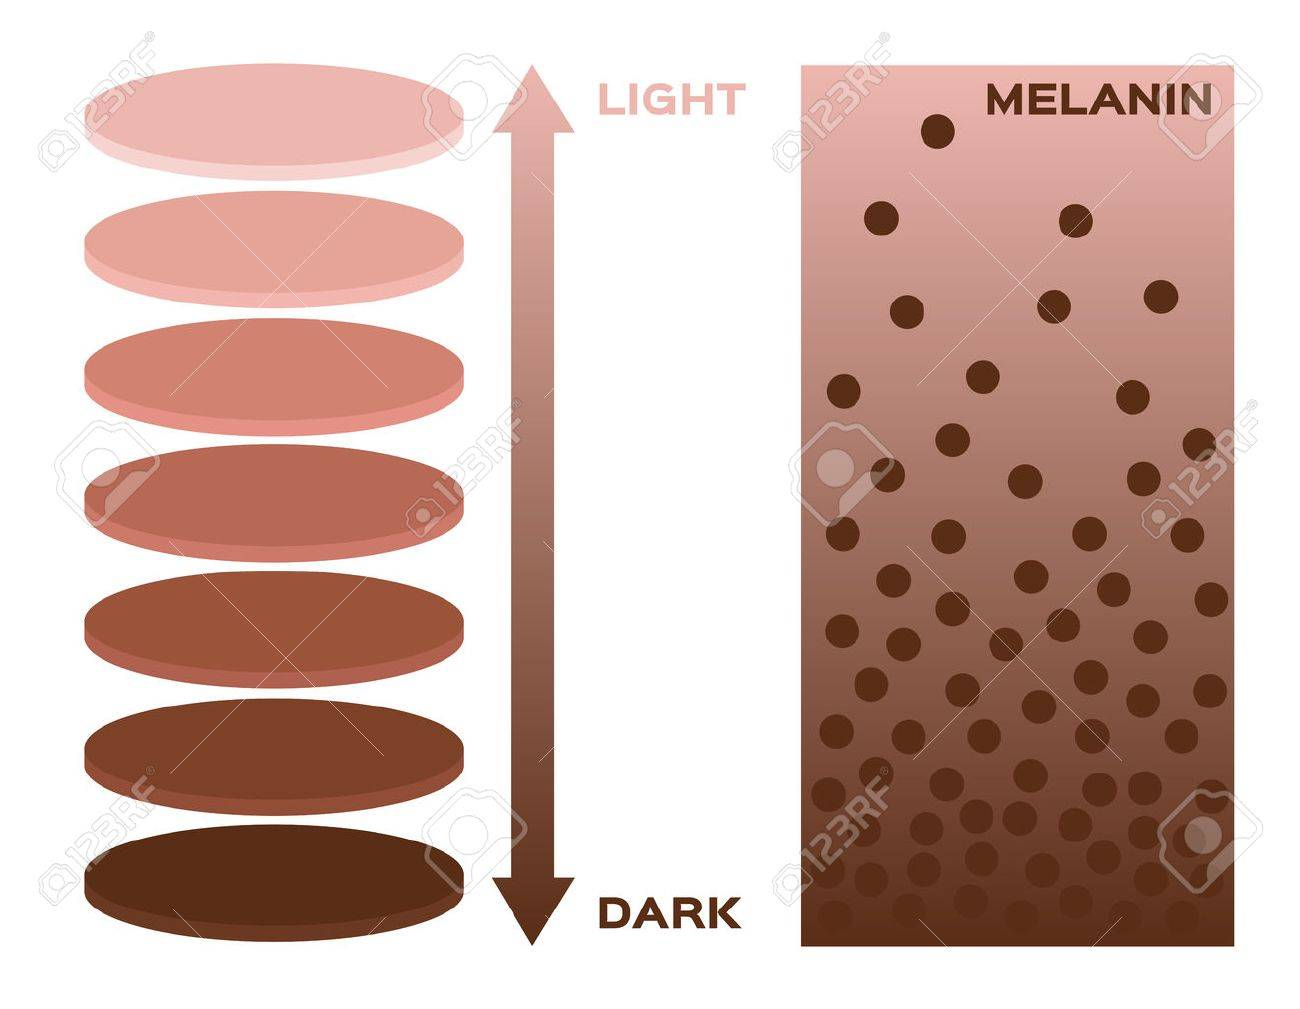 Skin color and melanin index infographic vector 3 chart skin color and melanin index infographic vector 3 chart dark to light skin nvjuhfo Images